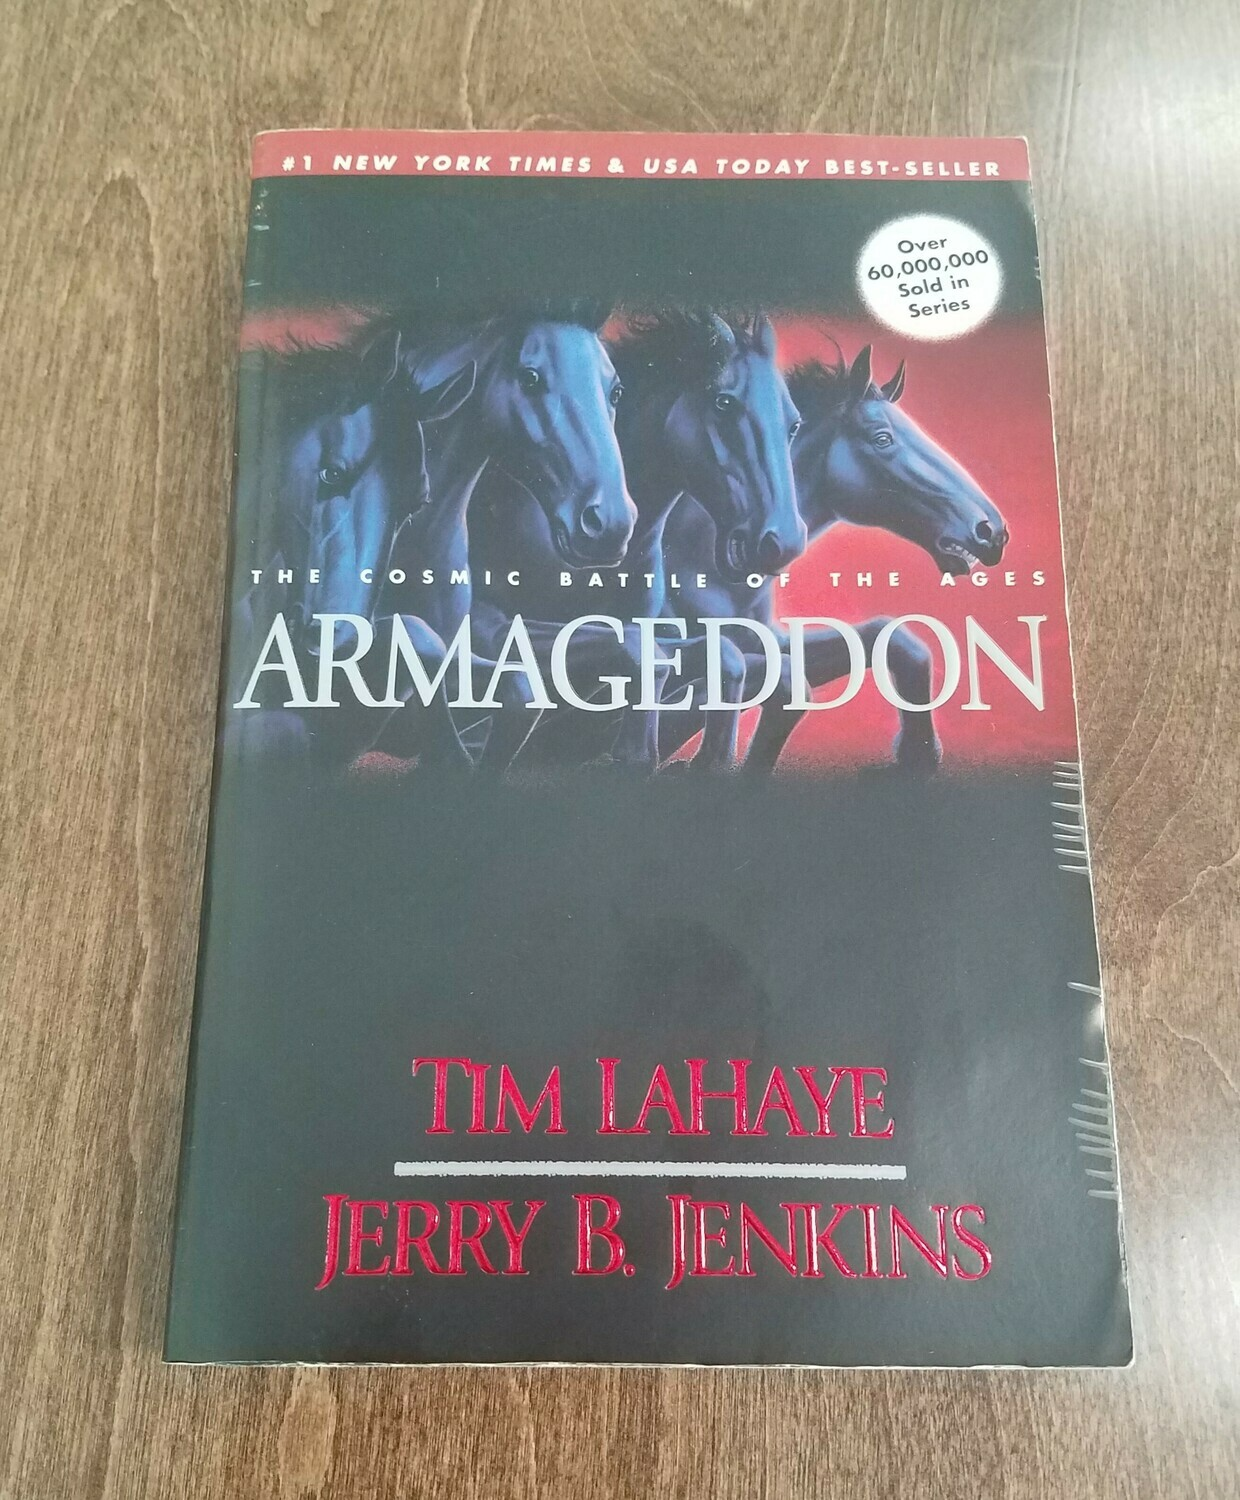 Armageddon: The Cosmic Battle of the Ages by Tim LaHaye and Jerry B. Jenkins - Paperback